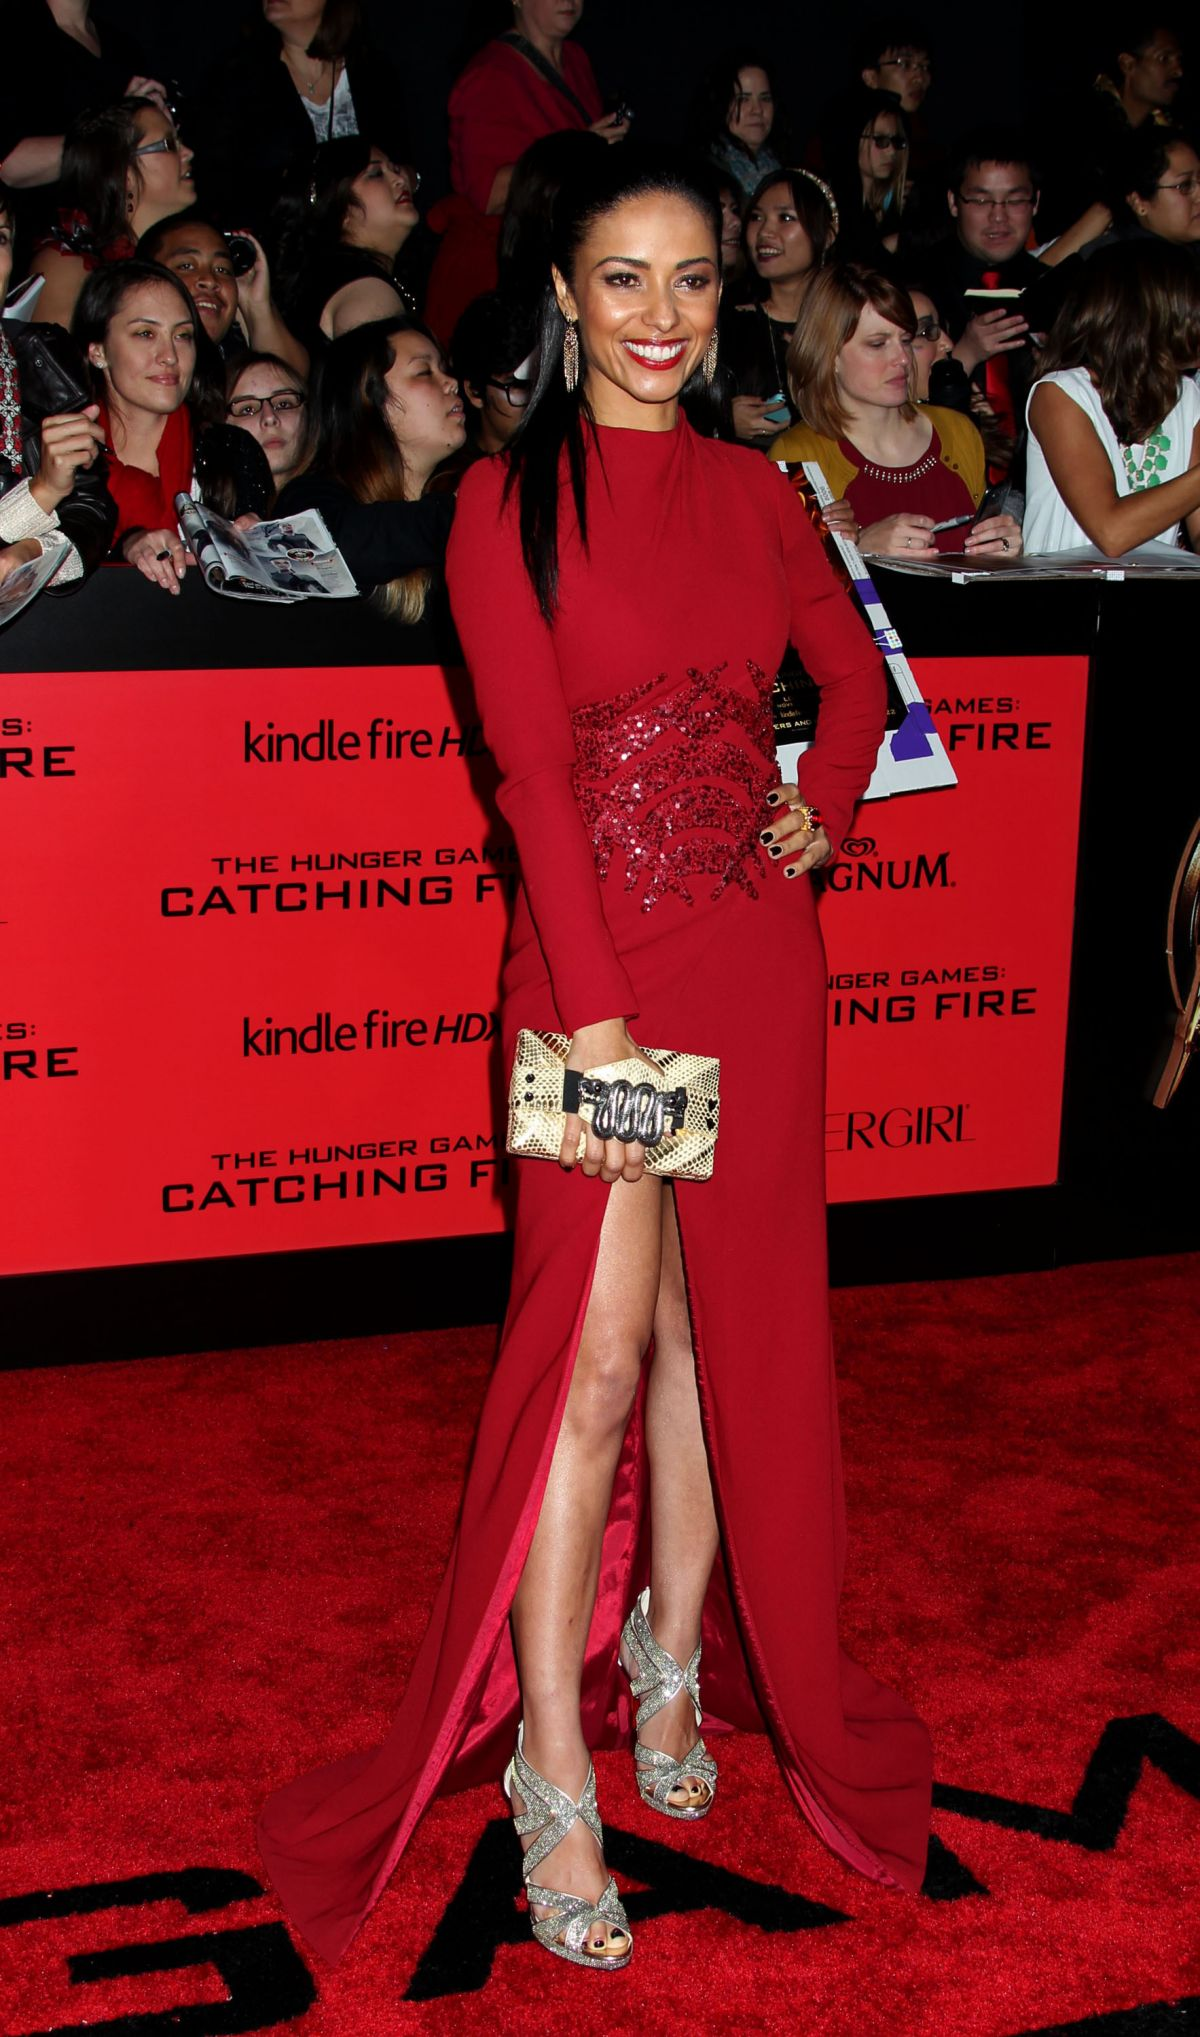 Meta Golding At The Hunger Games Catching Fire Premiere In LA